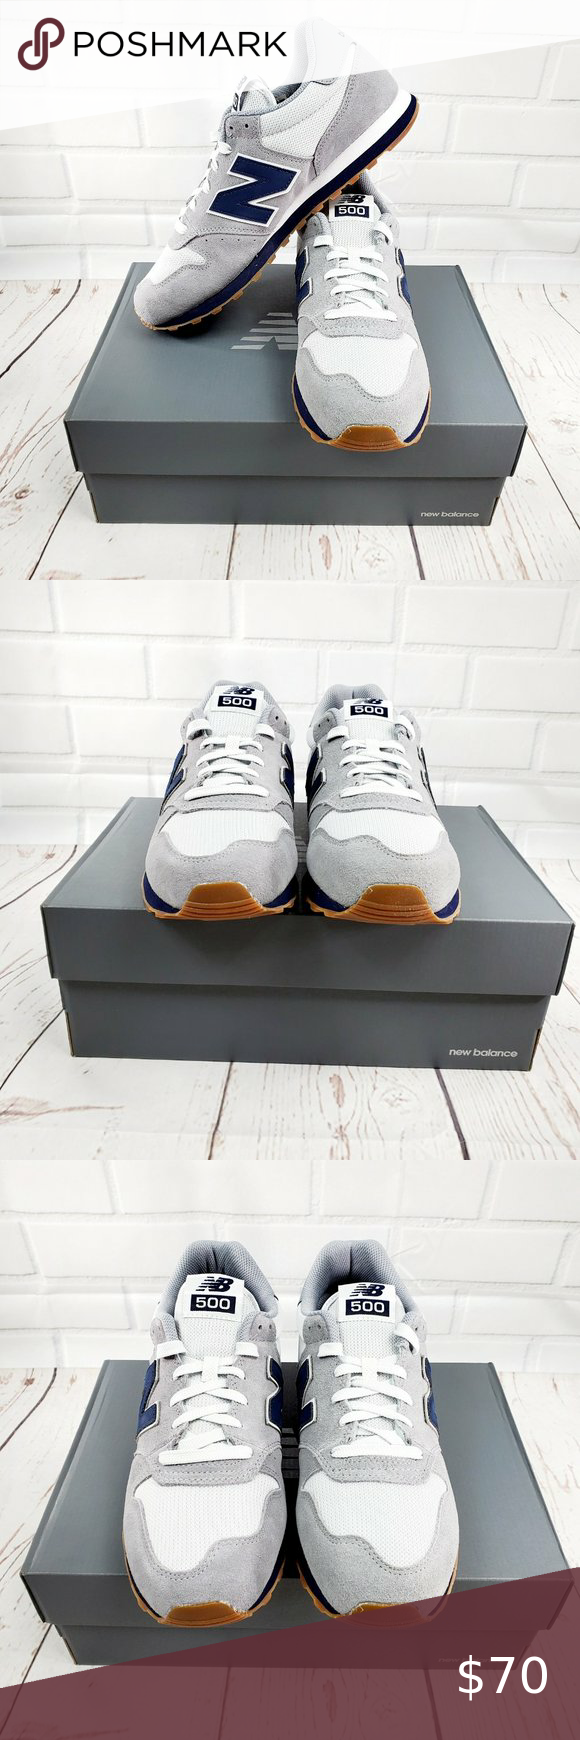 New Balance 500 Classic Mens Shoes   Shoes, New balance shoes, New ...